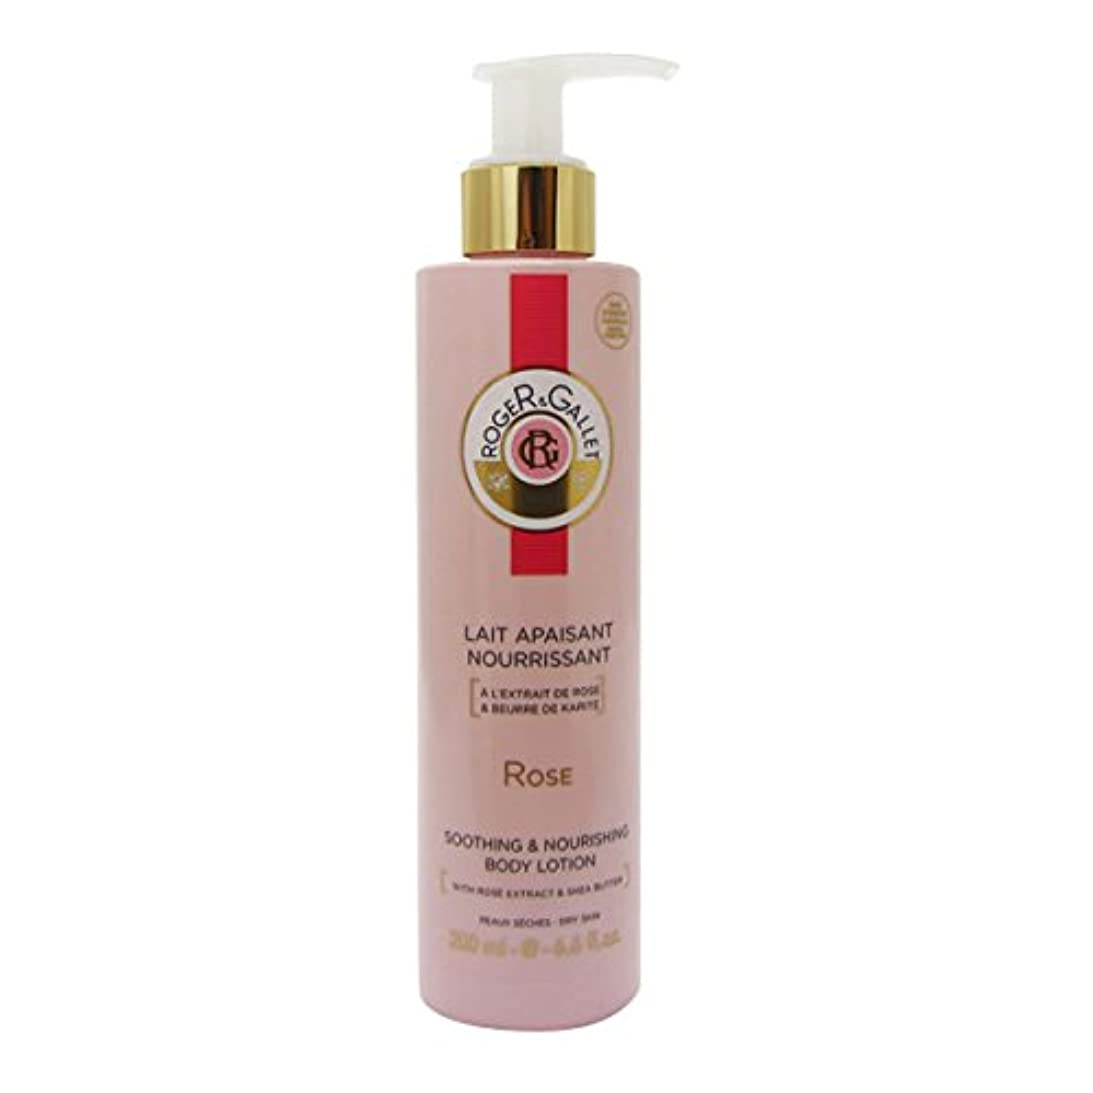 Roger Gallet Rose Soothing And Nourishing Body Lotion 200ml [並行輸入品]